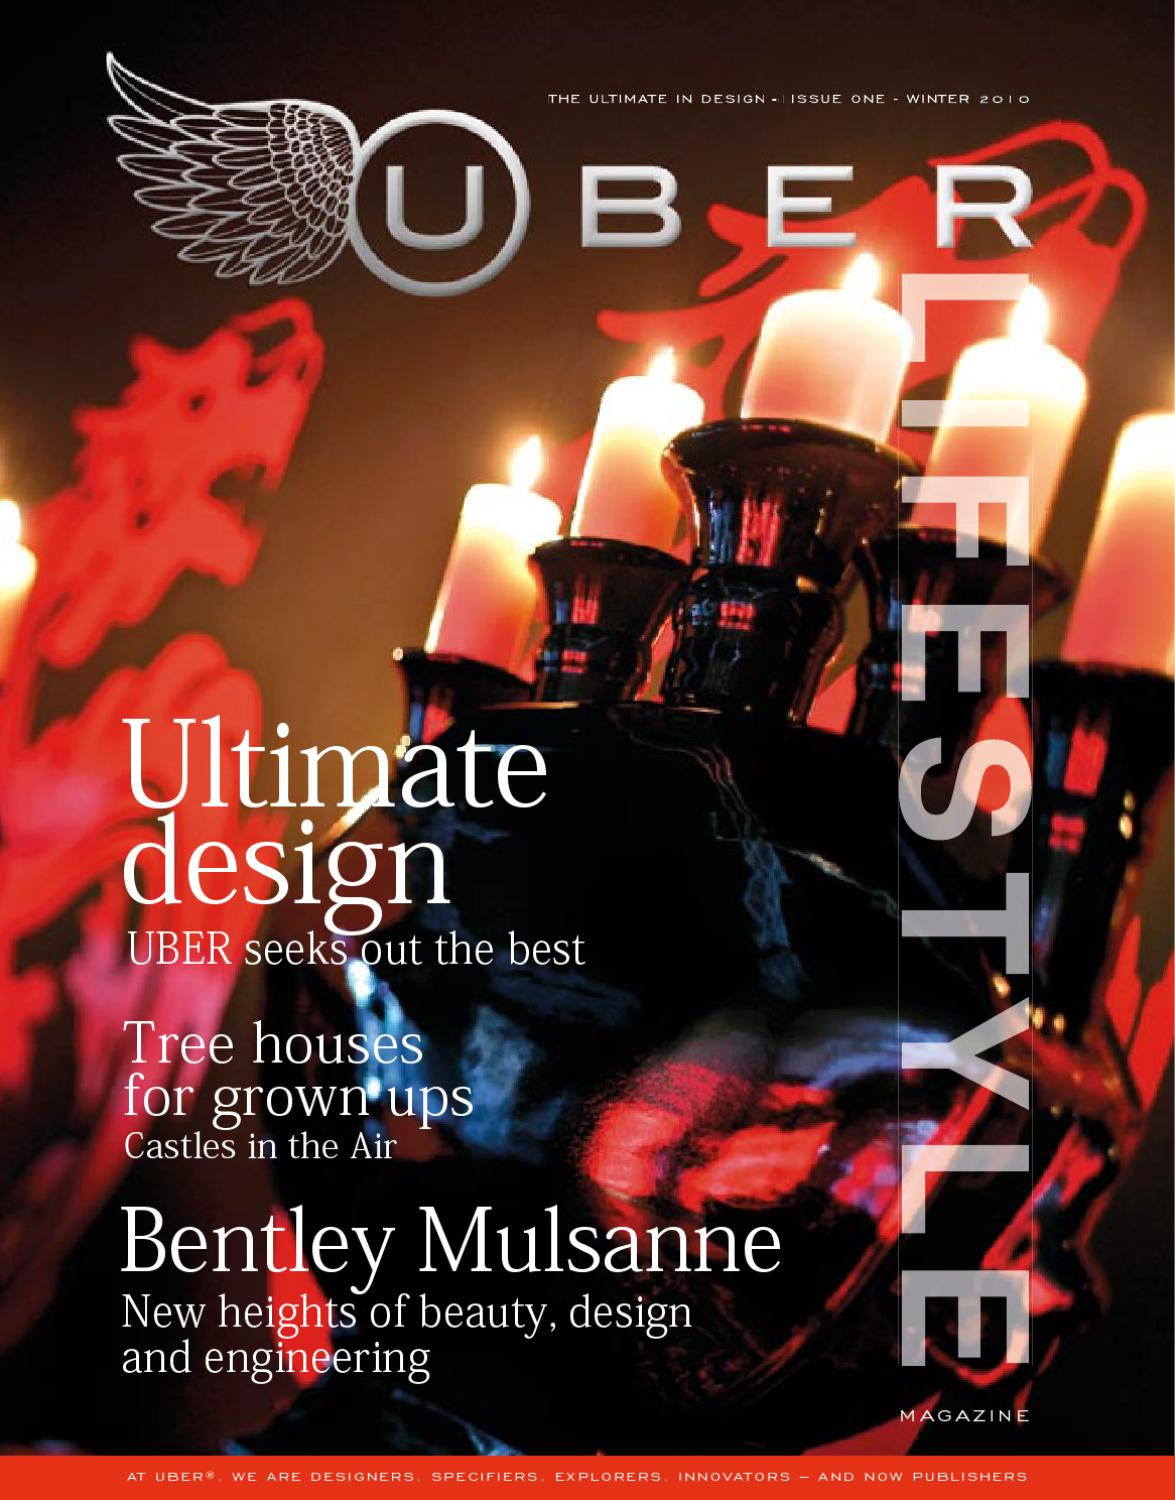 uber lifestyle issue 1 by uber interiors issuu. Black Bedroom Furniture Sets. Home Design Ideas